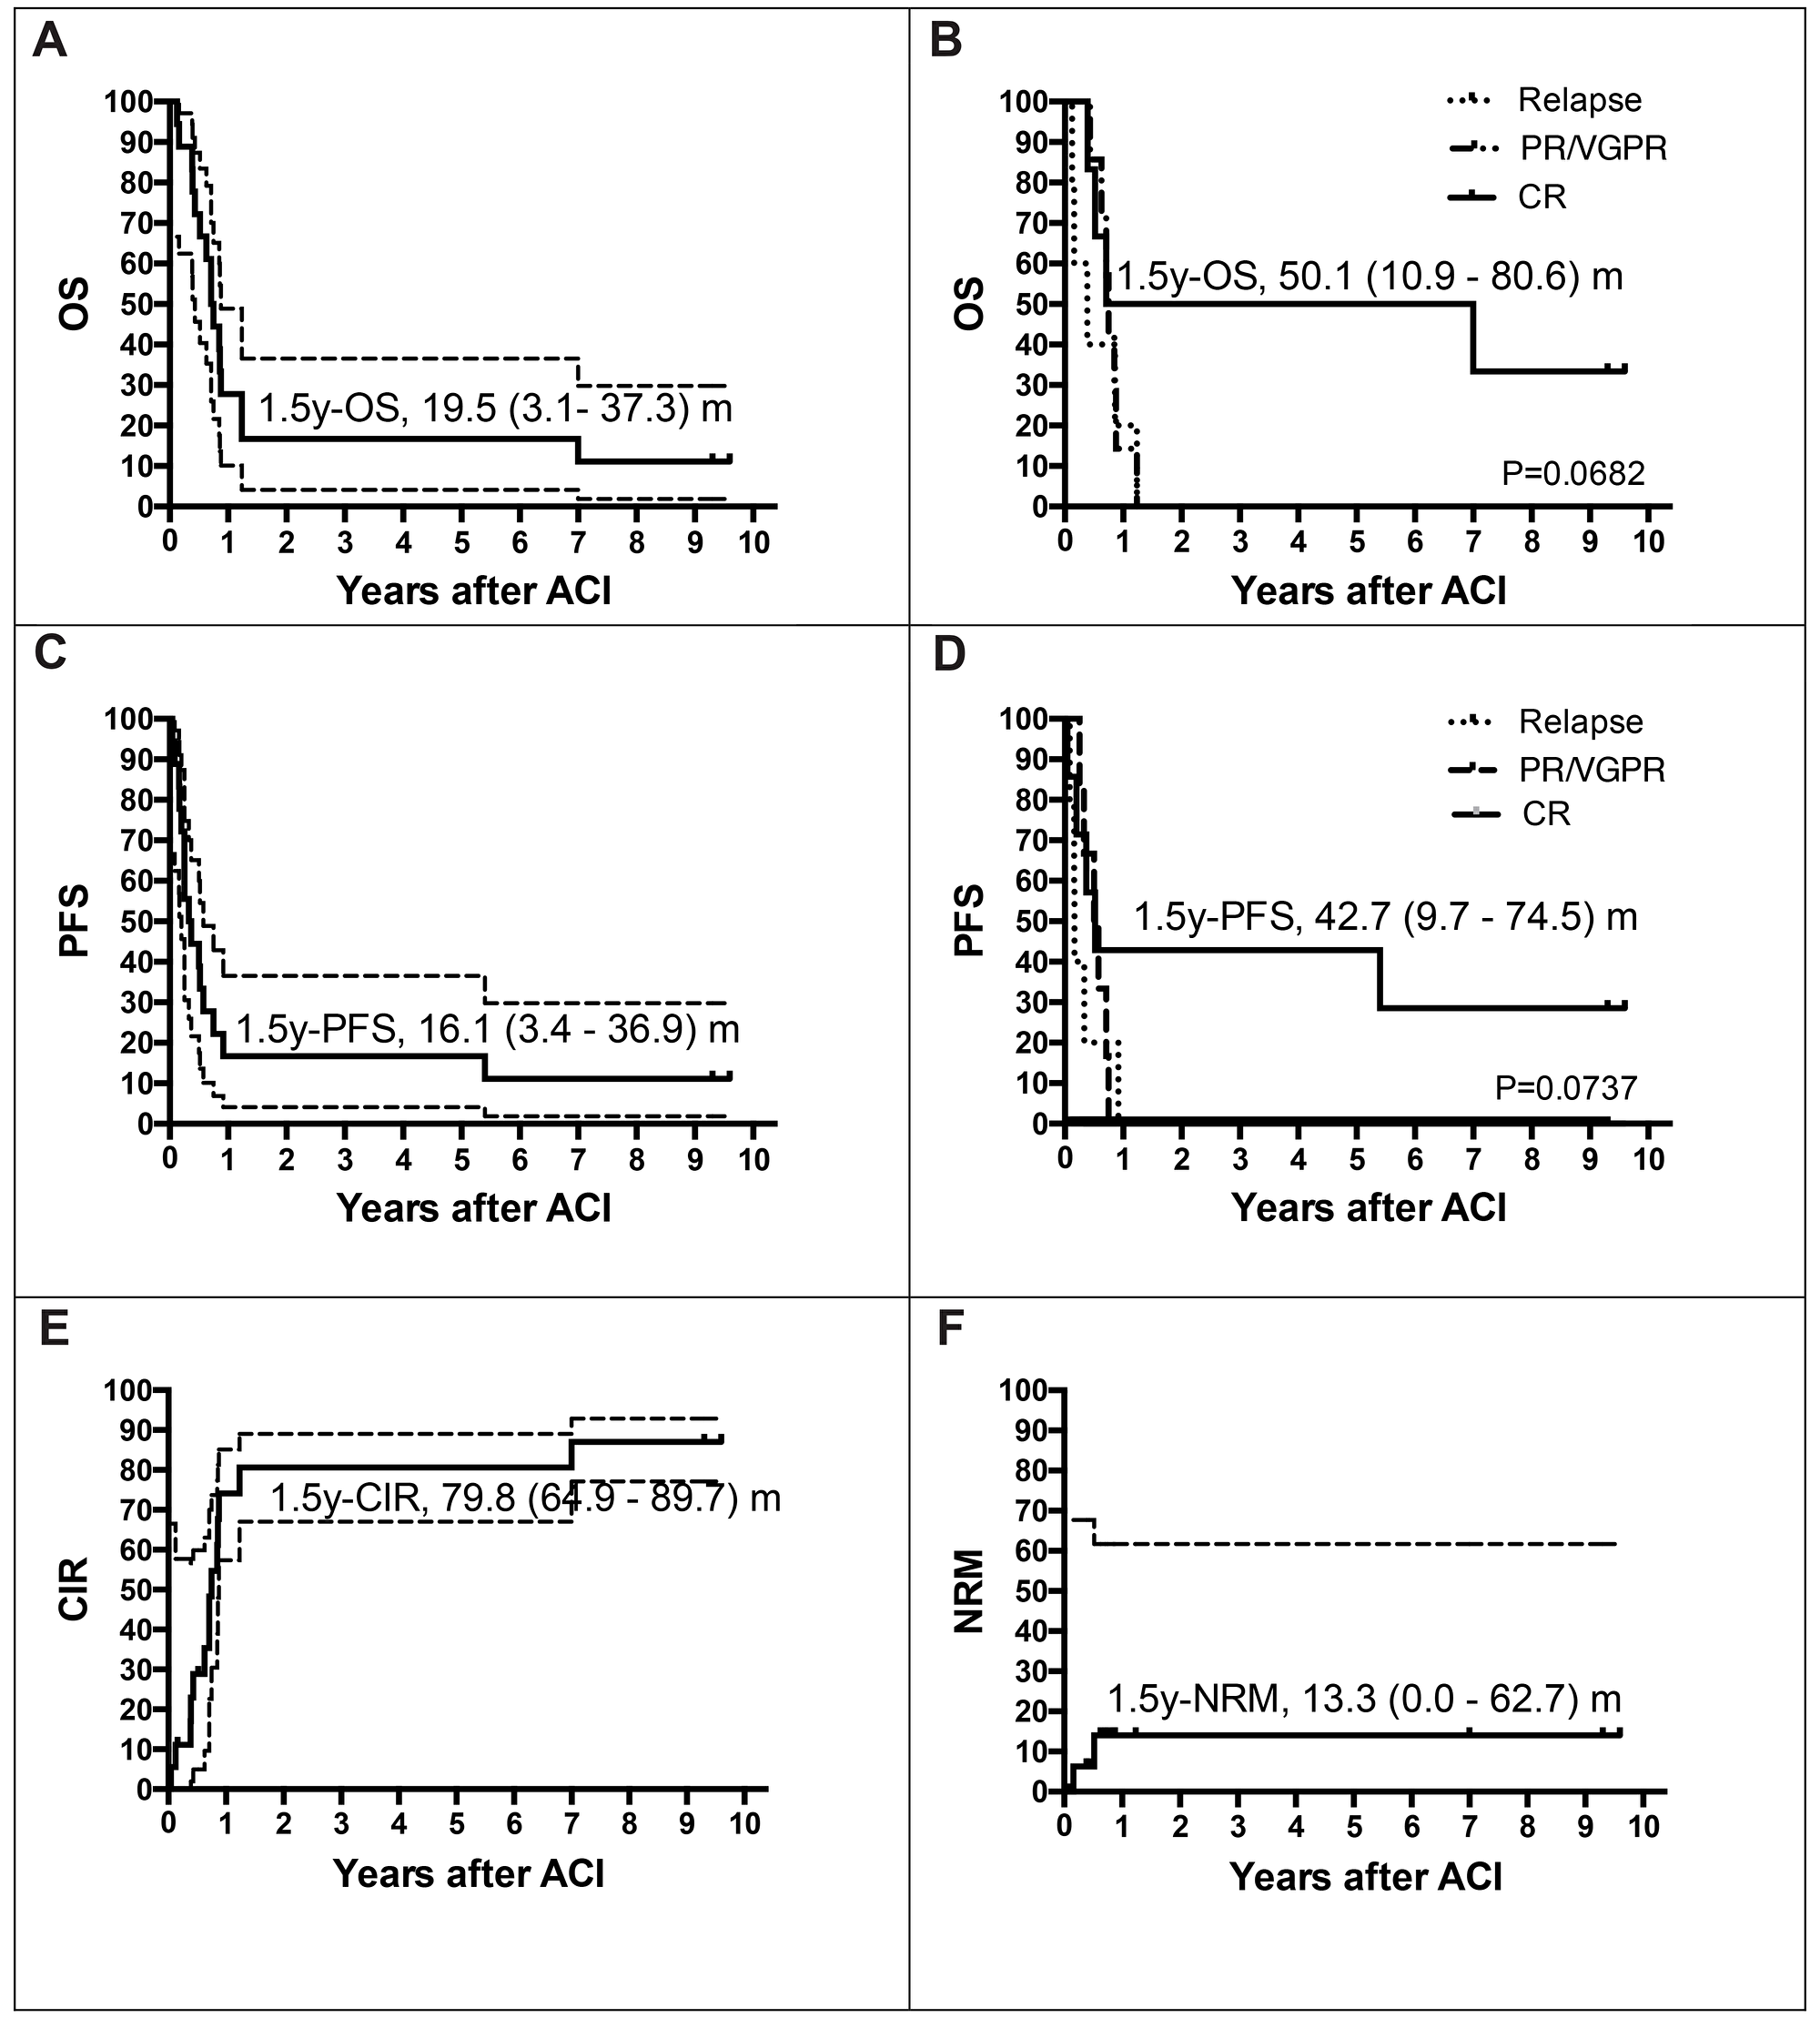 Estimates of overall survival rate (OS), event free survival (EFS), relapse and non-relapse mortality (NRM). Patients at risk, n.